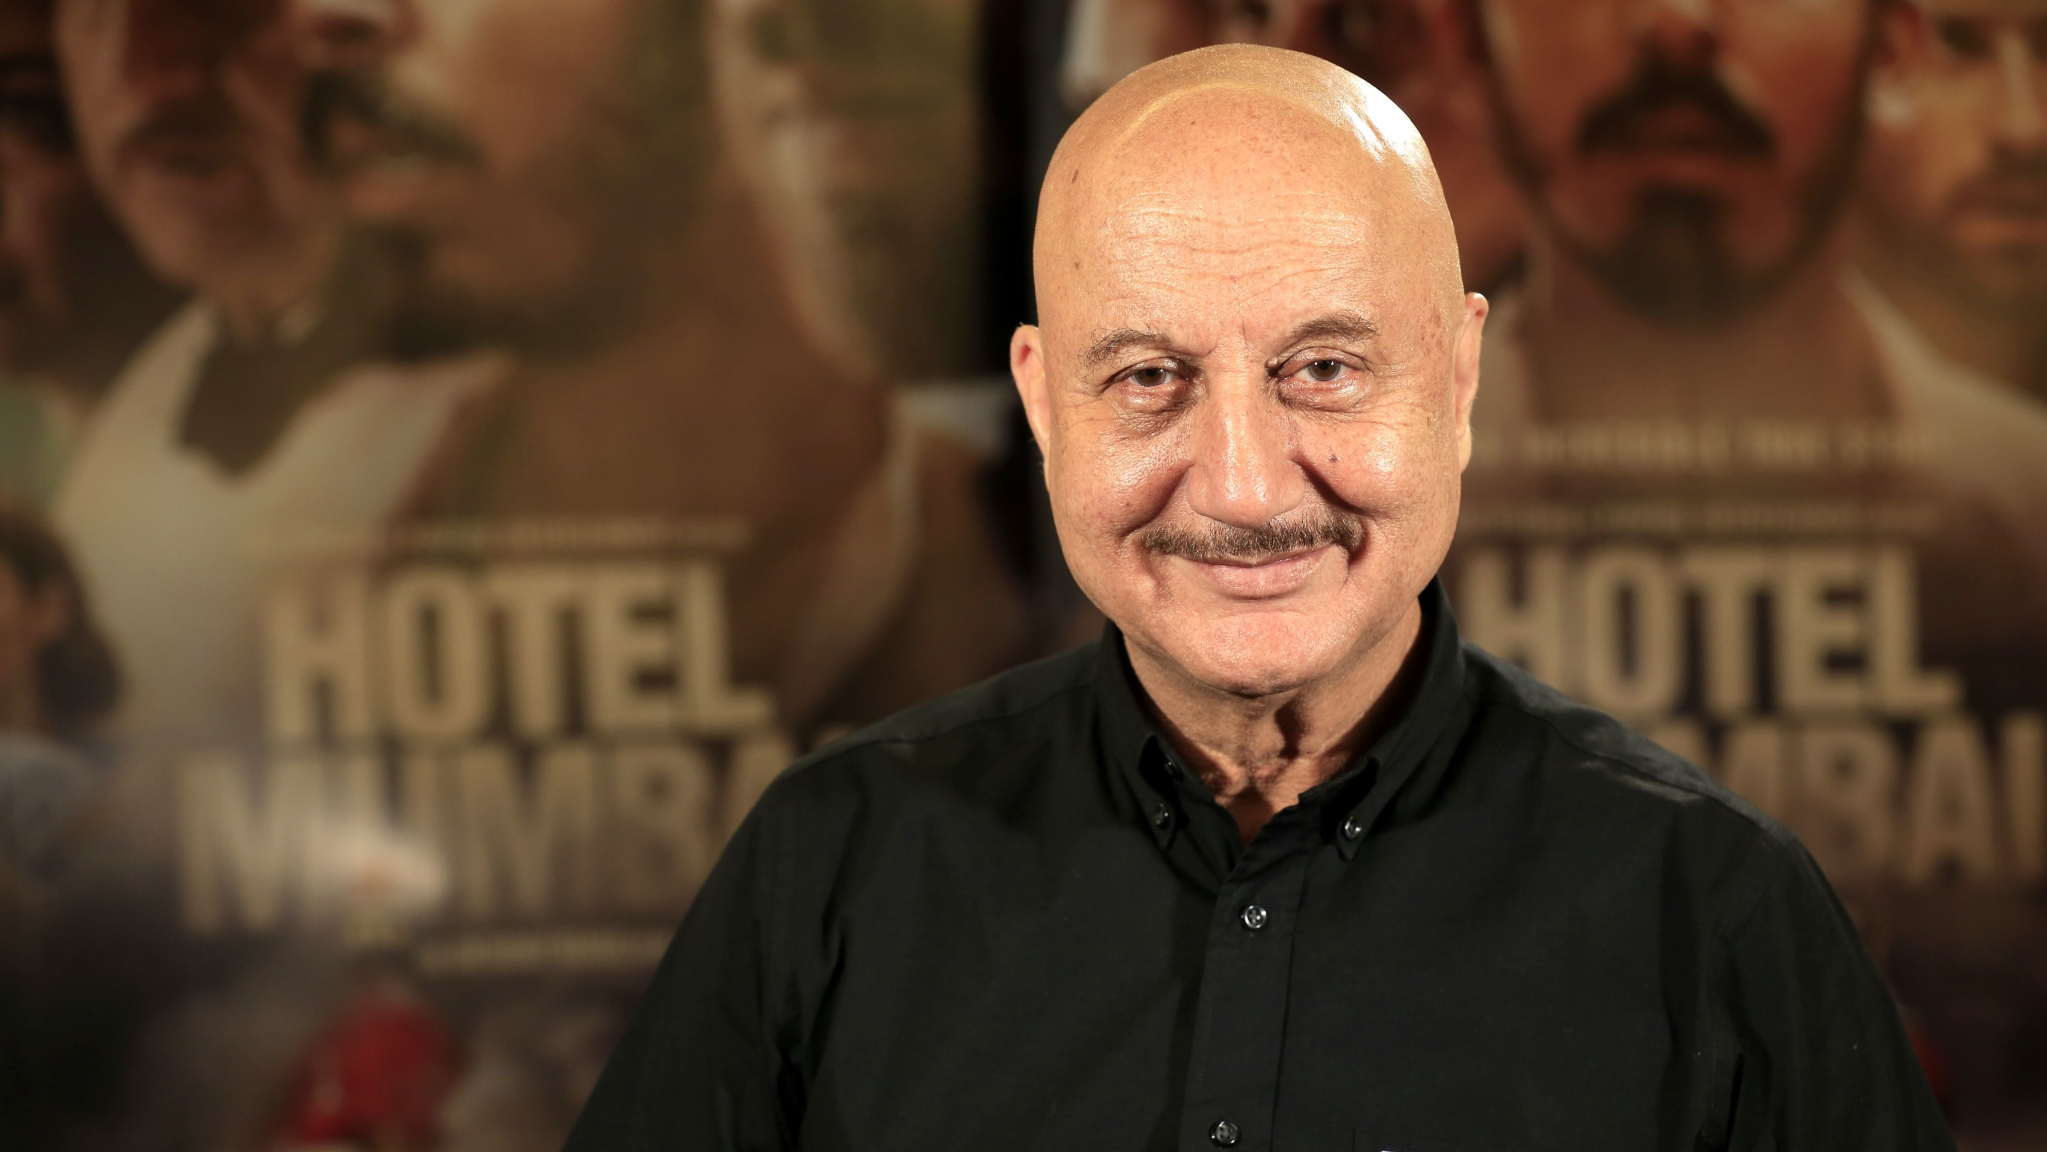 26/11 Needs to Be Fresh in the Memory of People: Anupam Kher